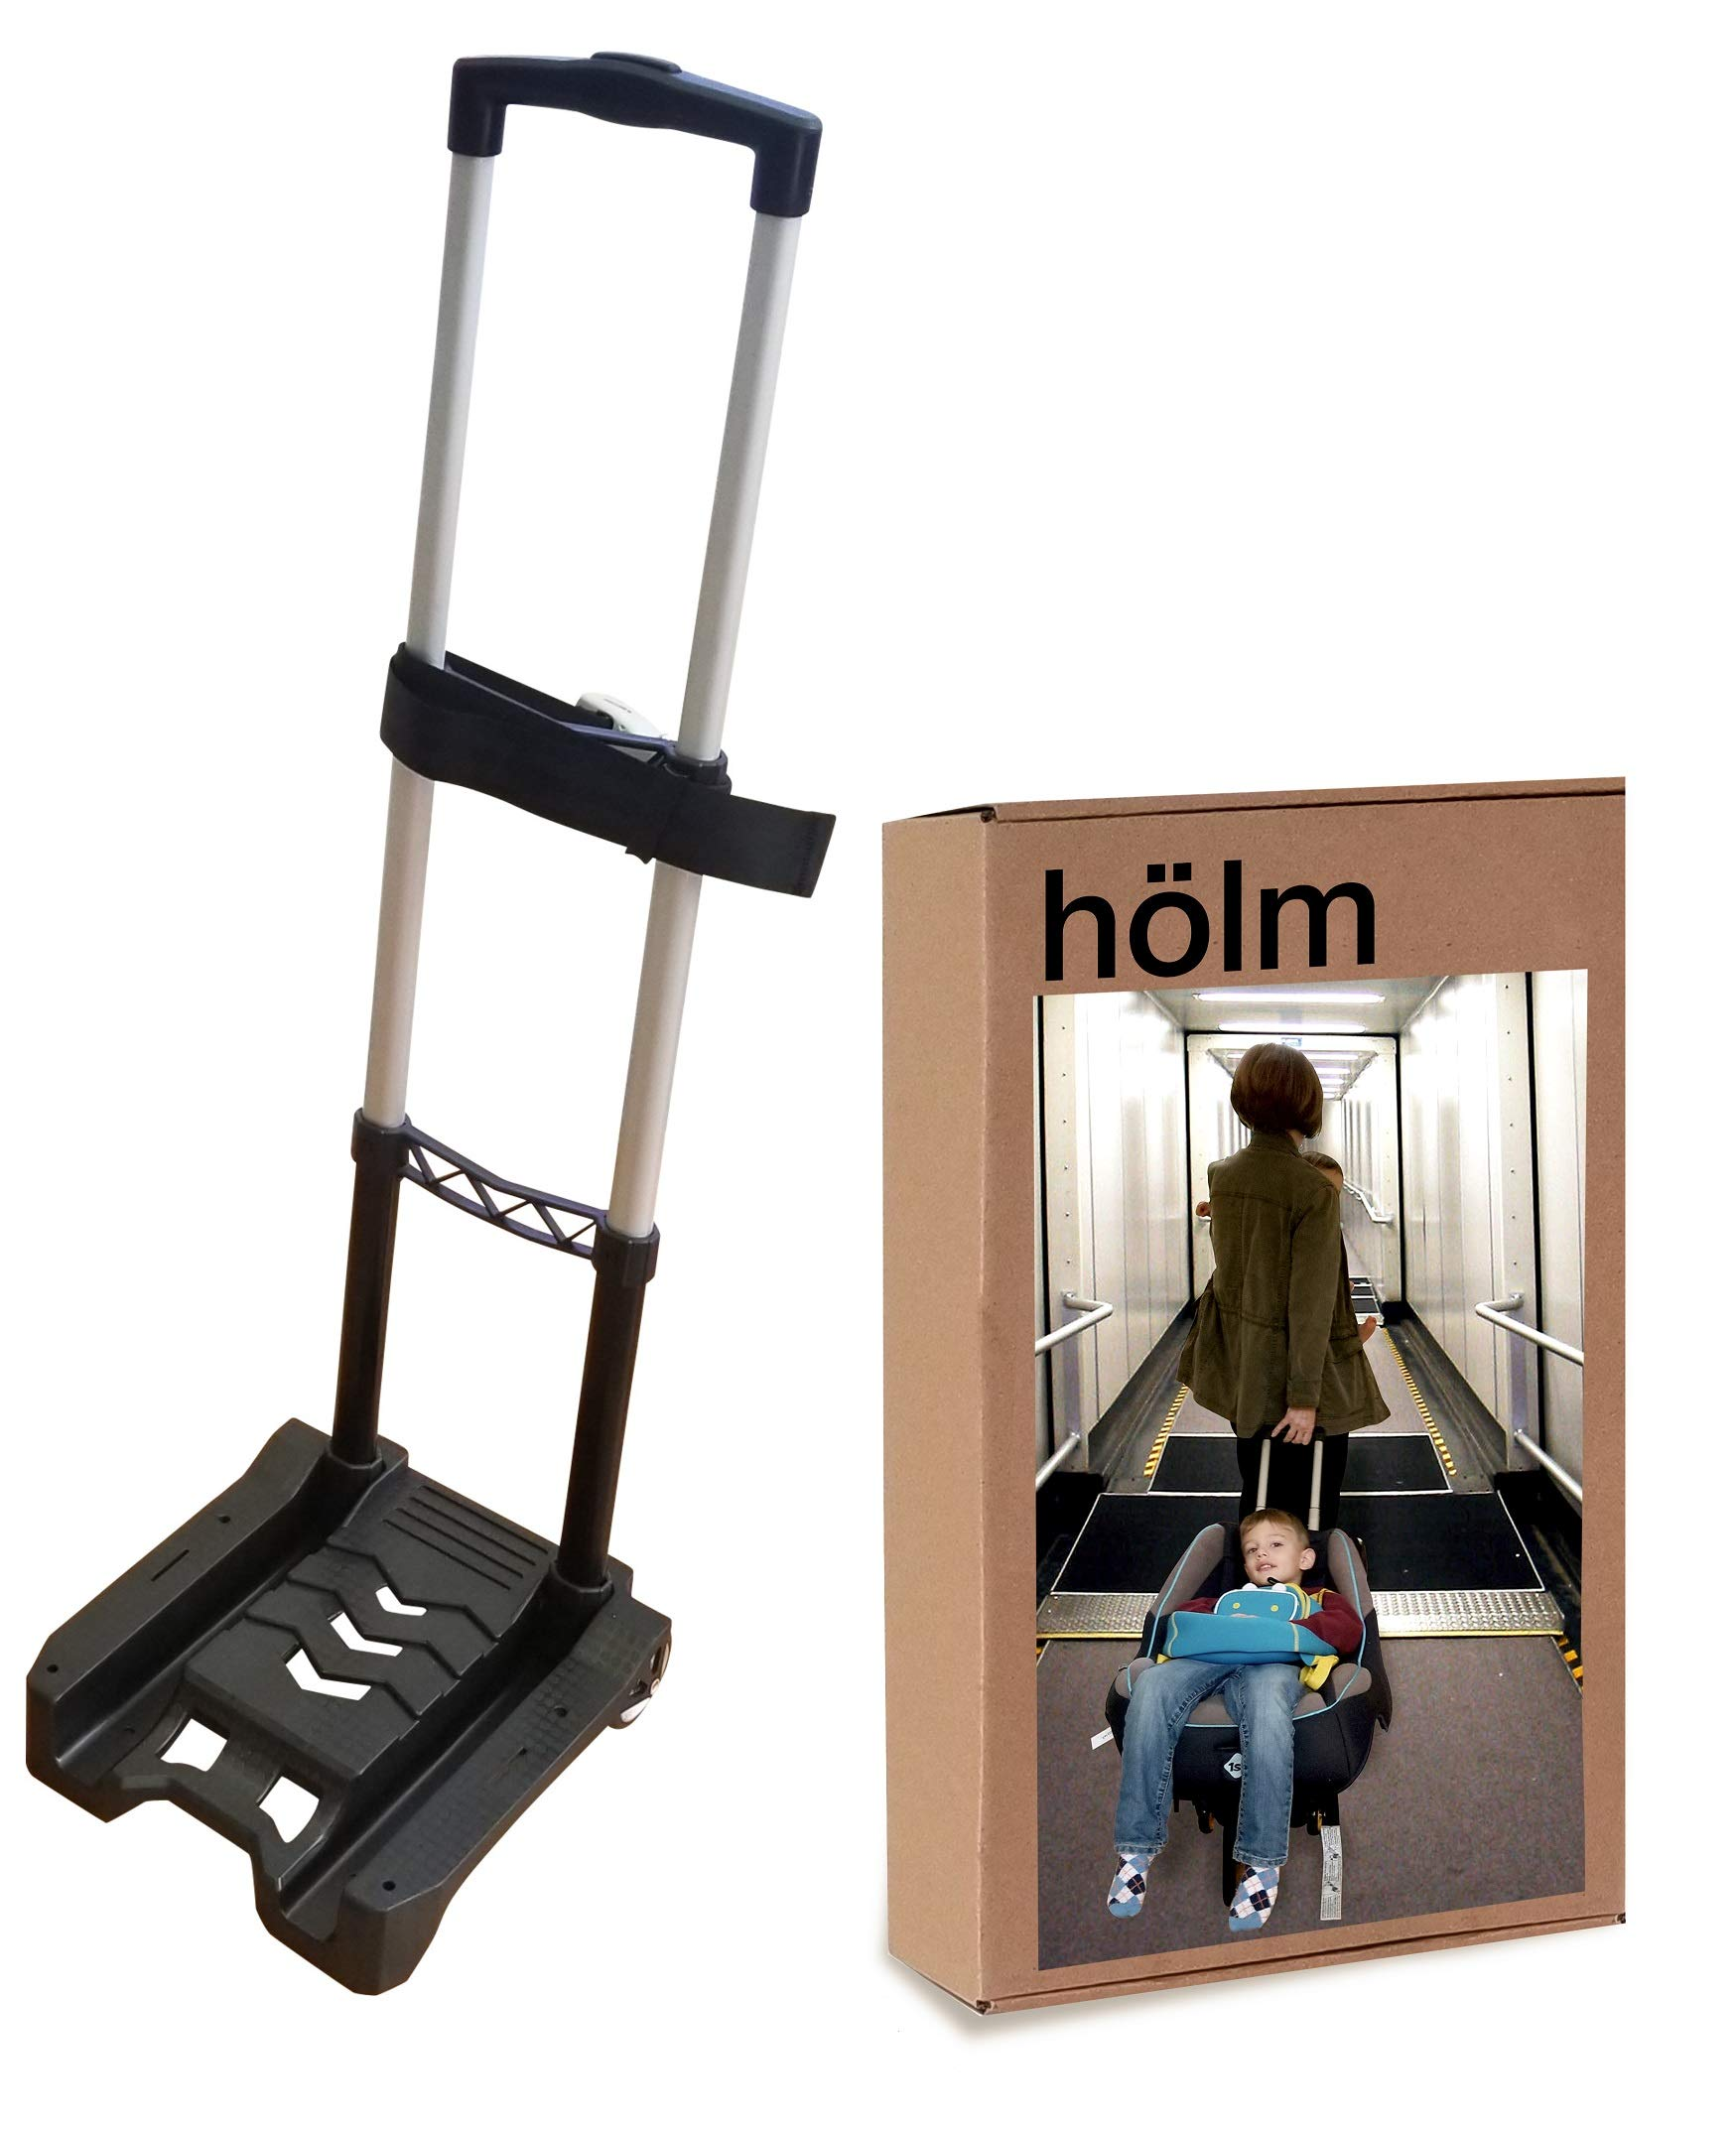 Holm Airport Car Seat Stroller Travel Cart and Child Transporter - A Carseat Roller for Traveling. Foldable, storable, and stowable Under Your Airplane seat or Over Head Compartment. by hölm